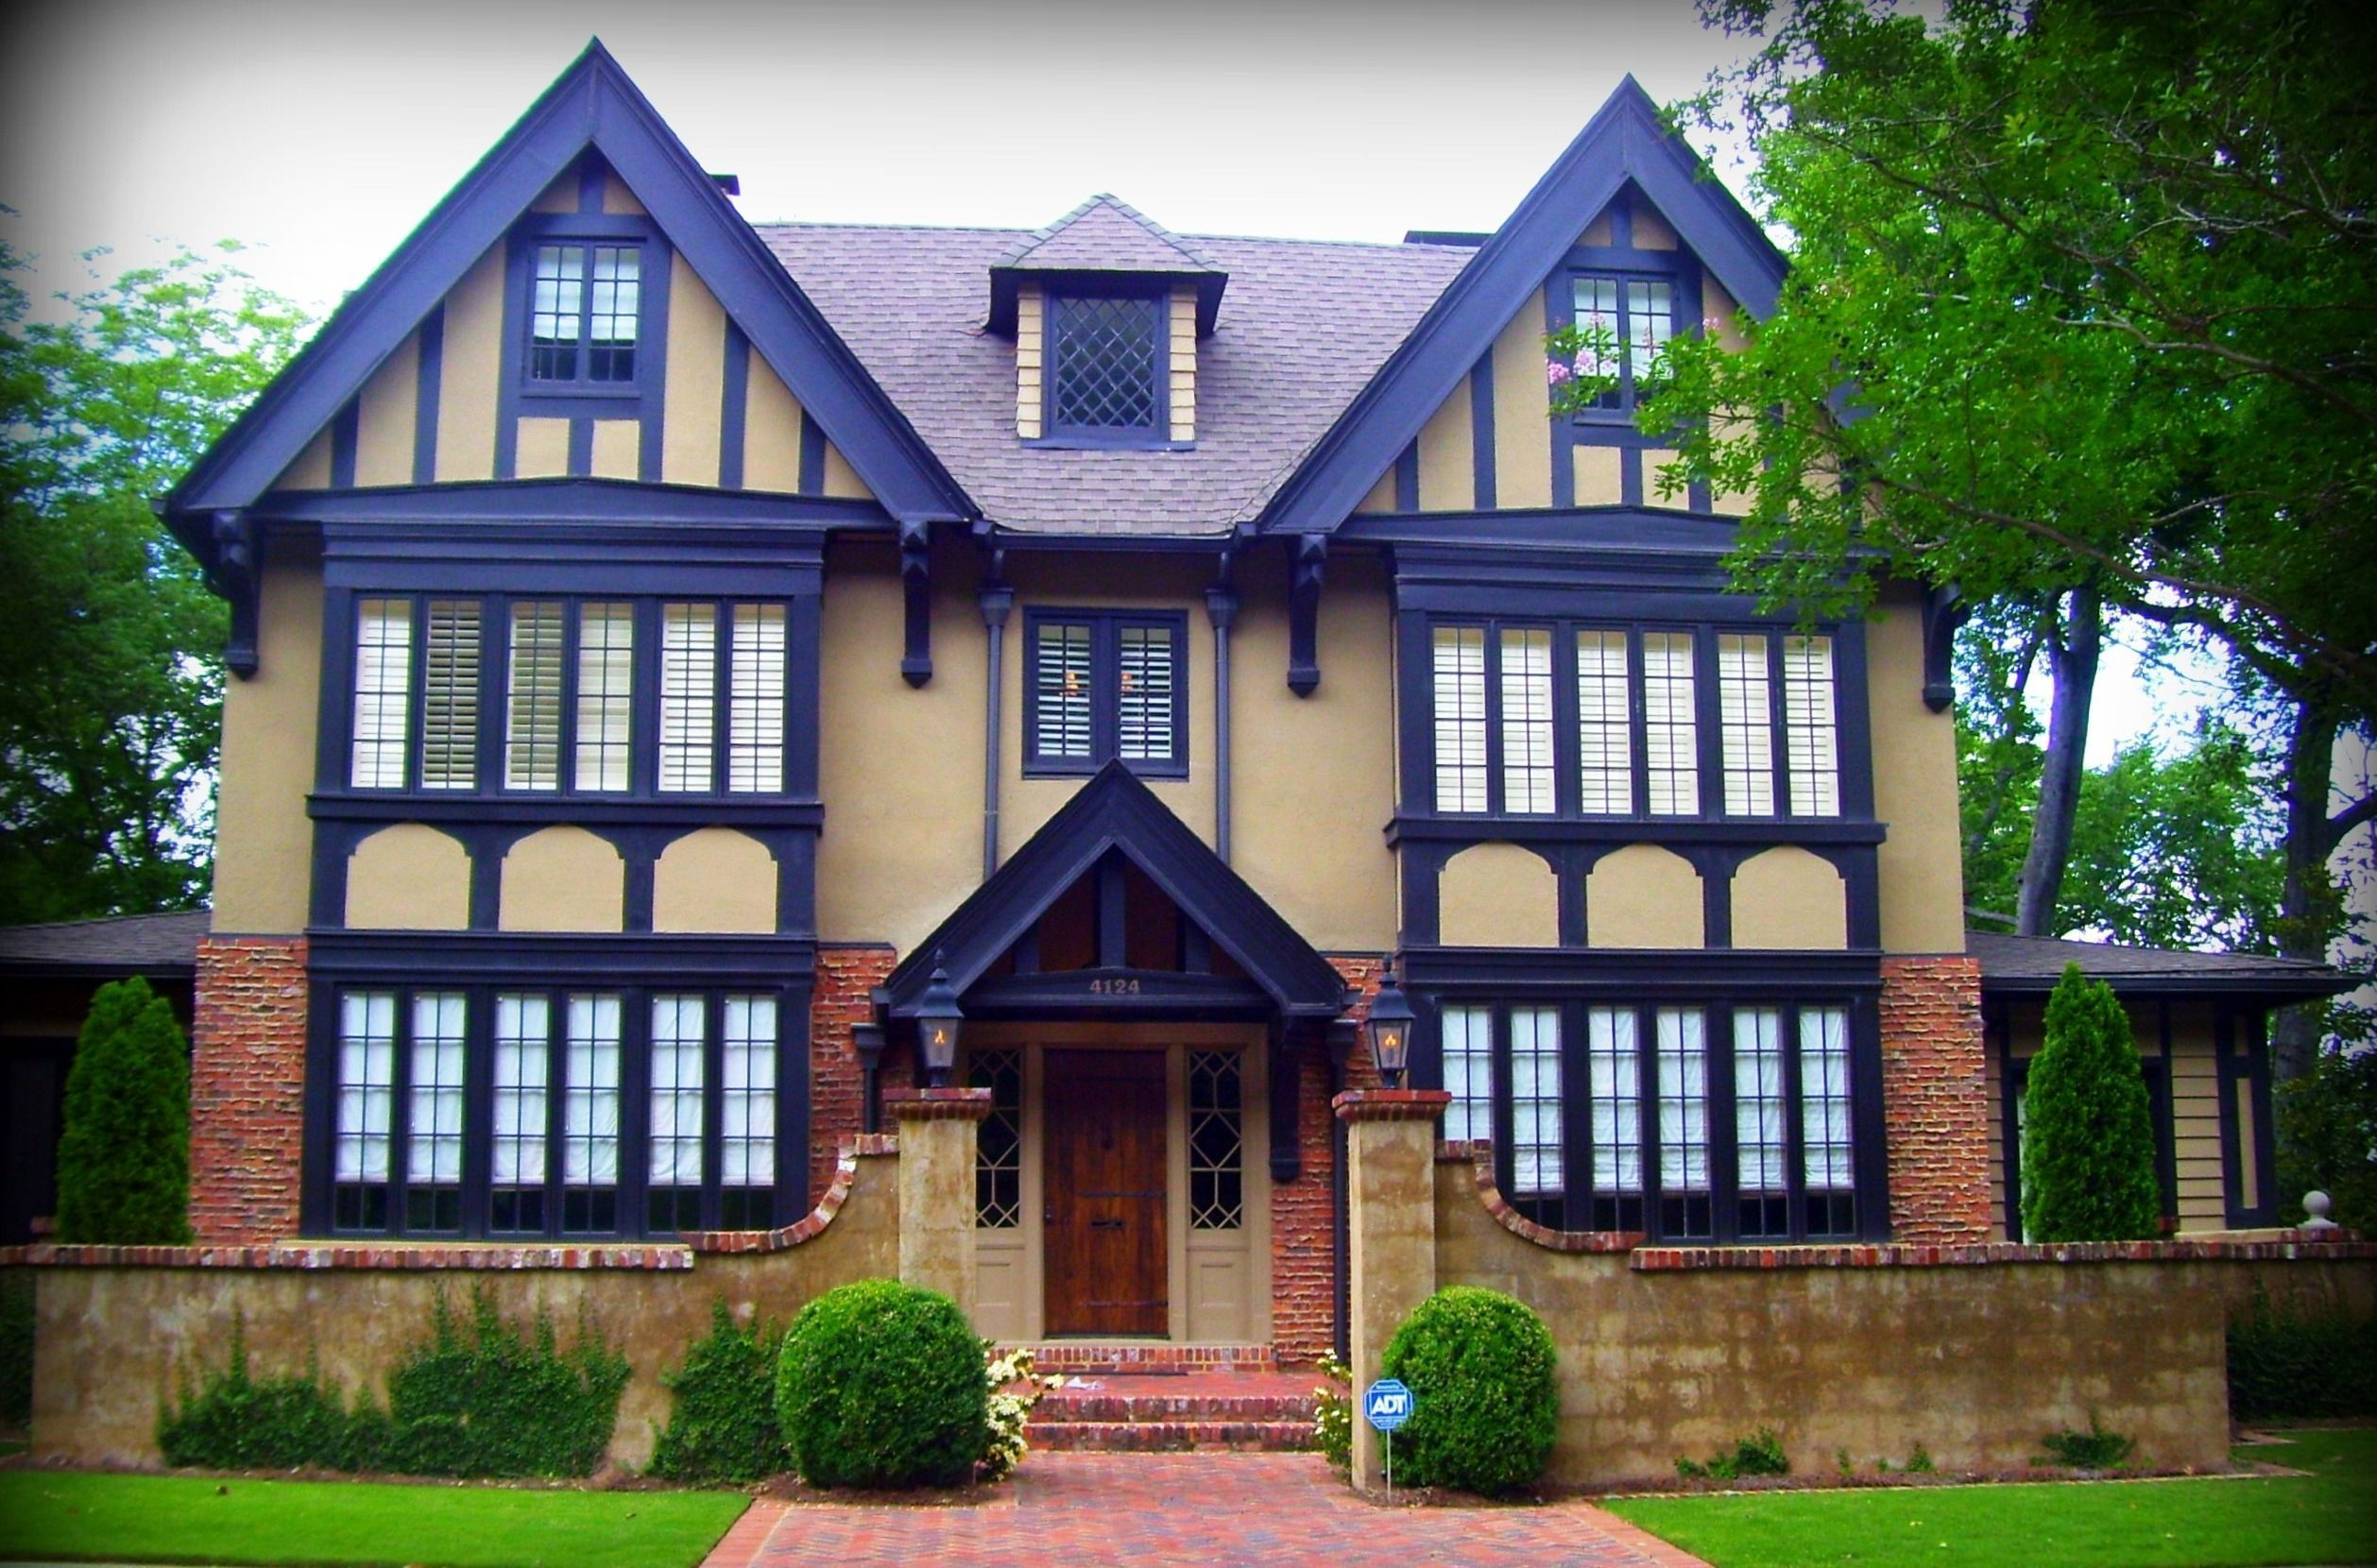 Forest Park homes for sale Tall Tudor image